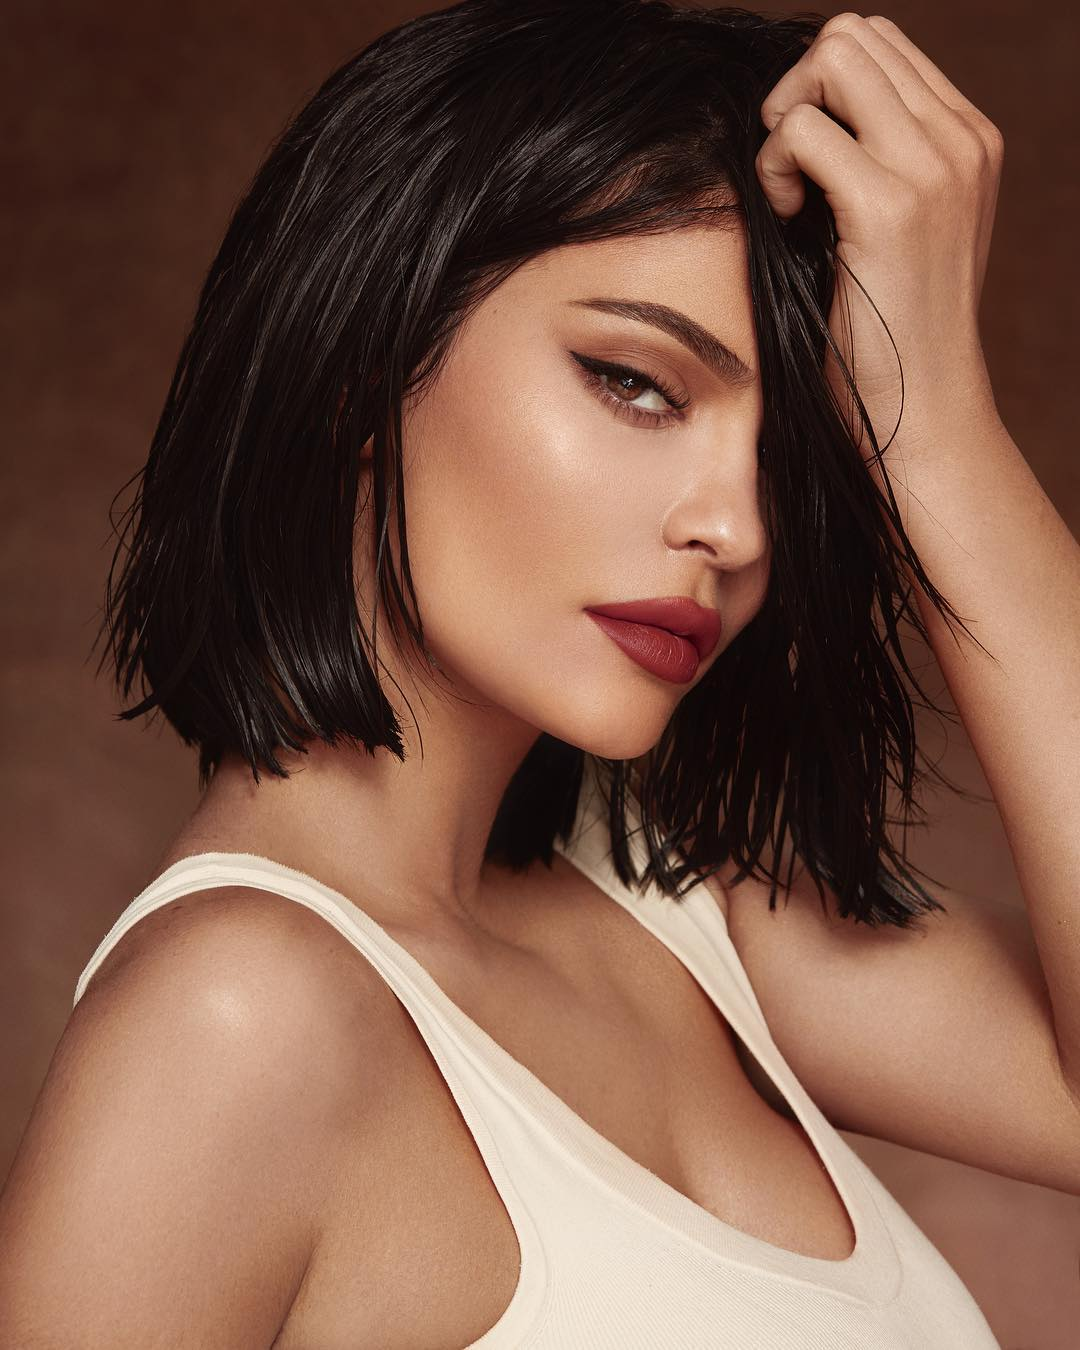 Kylie Jenner sells a majority stake of her beauty company to Coty for this WHOPPING amount